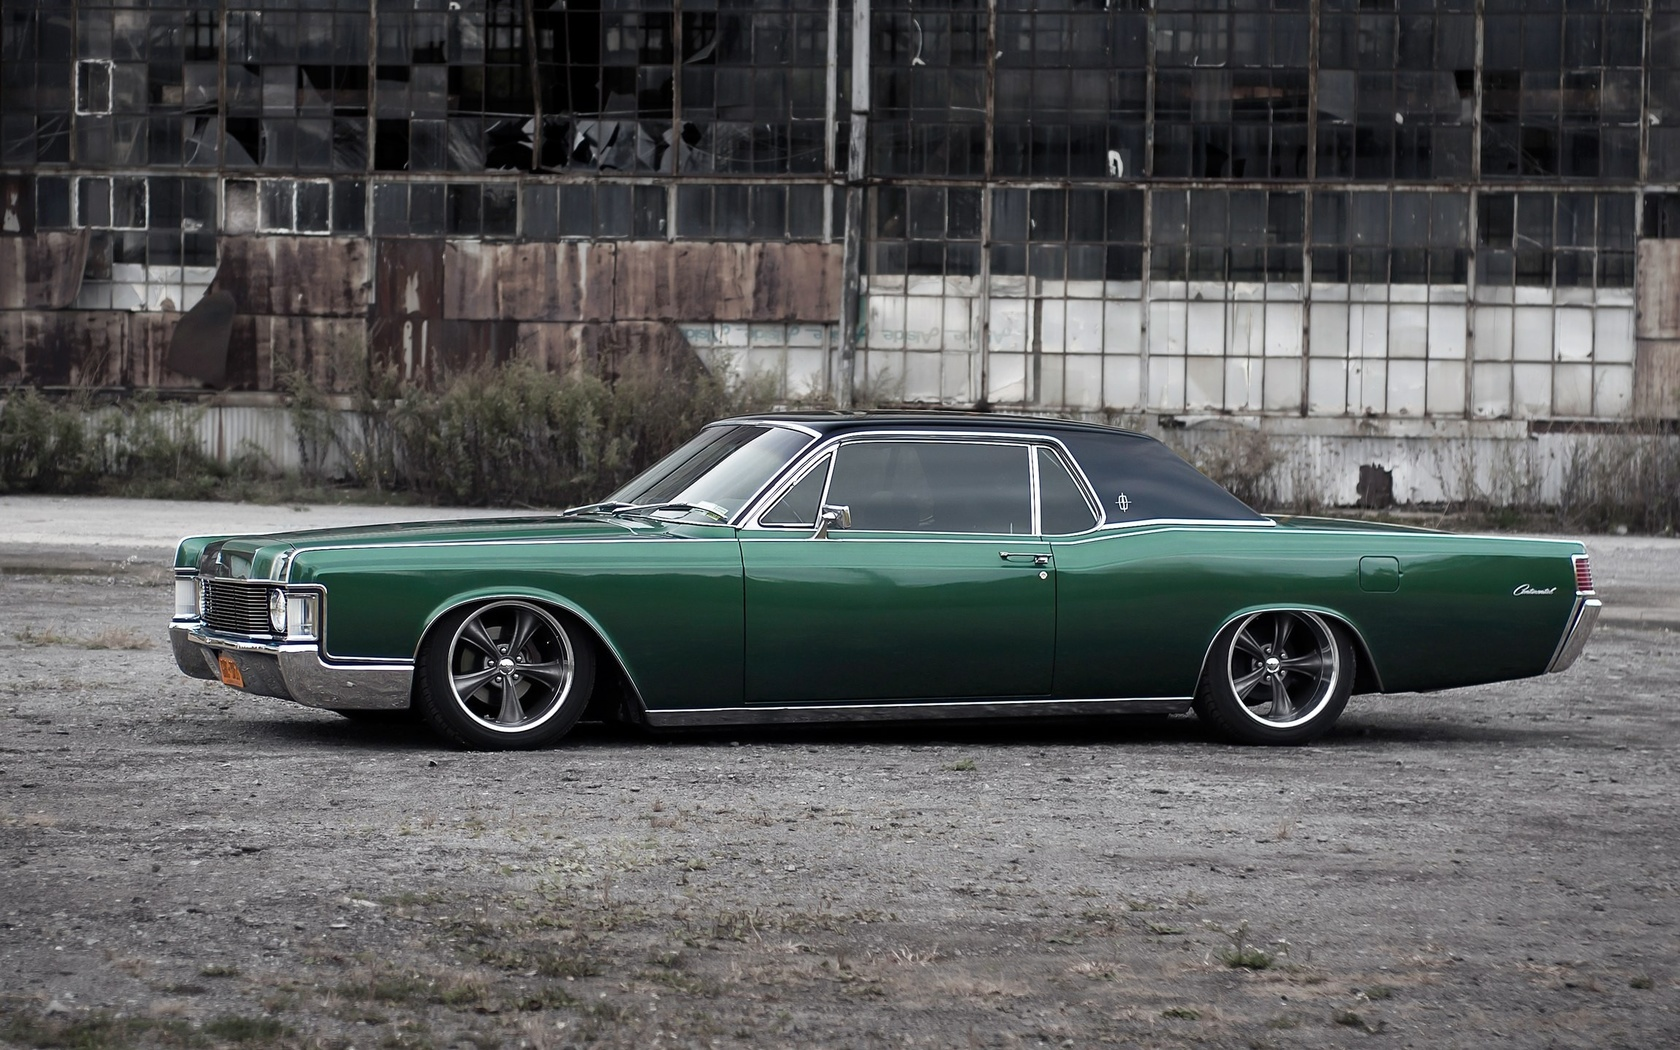 lincoln continental, tuning, stance, american cars, retro cars, green